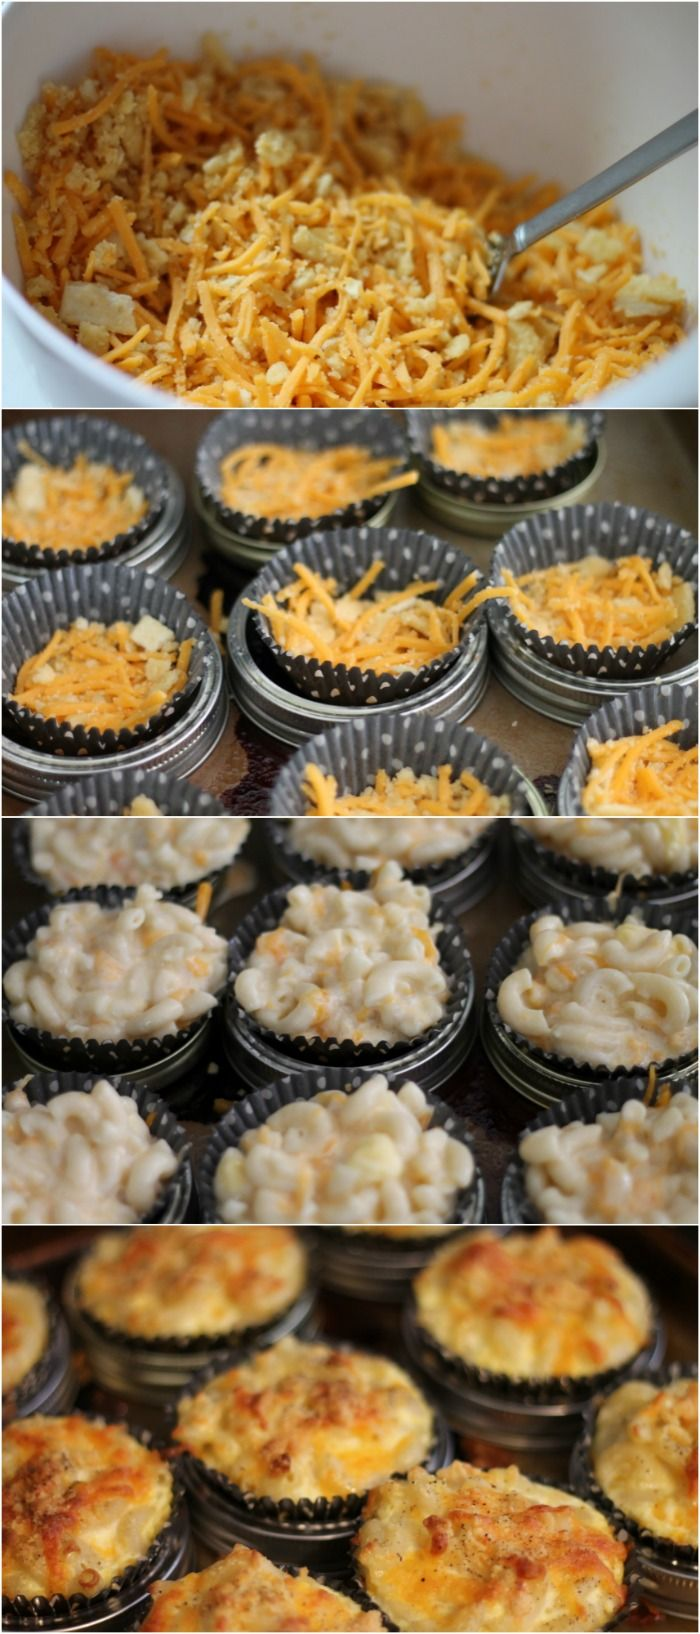 [ad] 4th of July Foods: Mac 'n Cheese Cupcakes & Fried Chicken - Nessa Makes